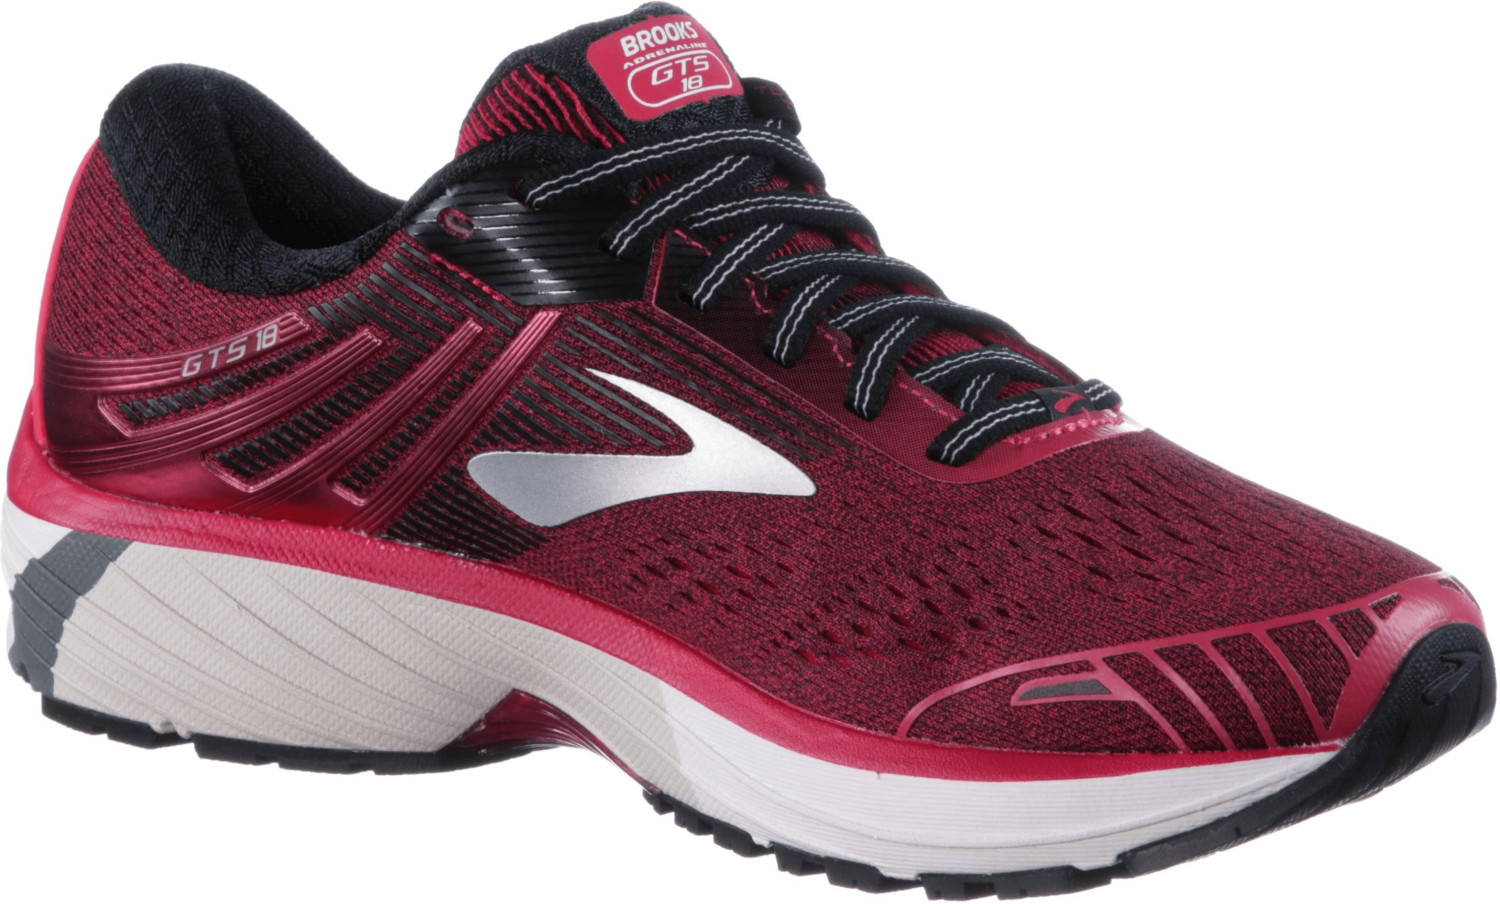 low priced f3f18 8f7d1 Brooks Adrenaline GTS 18 Women's Running Shoes | Pink